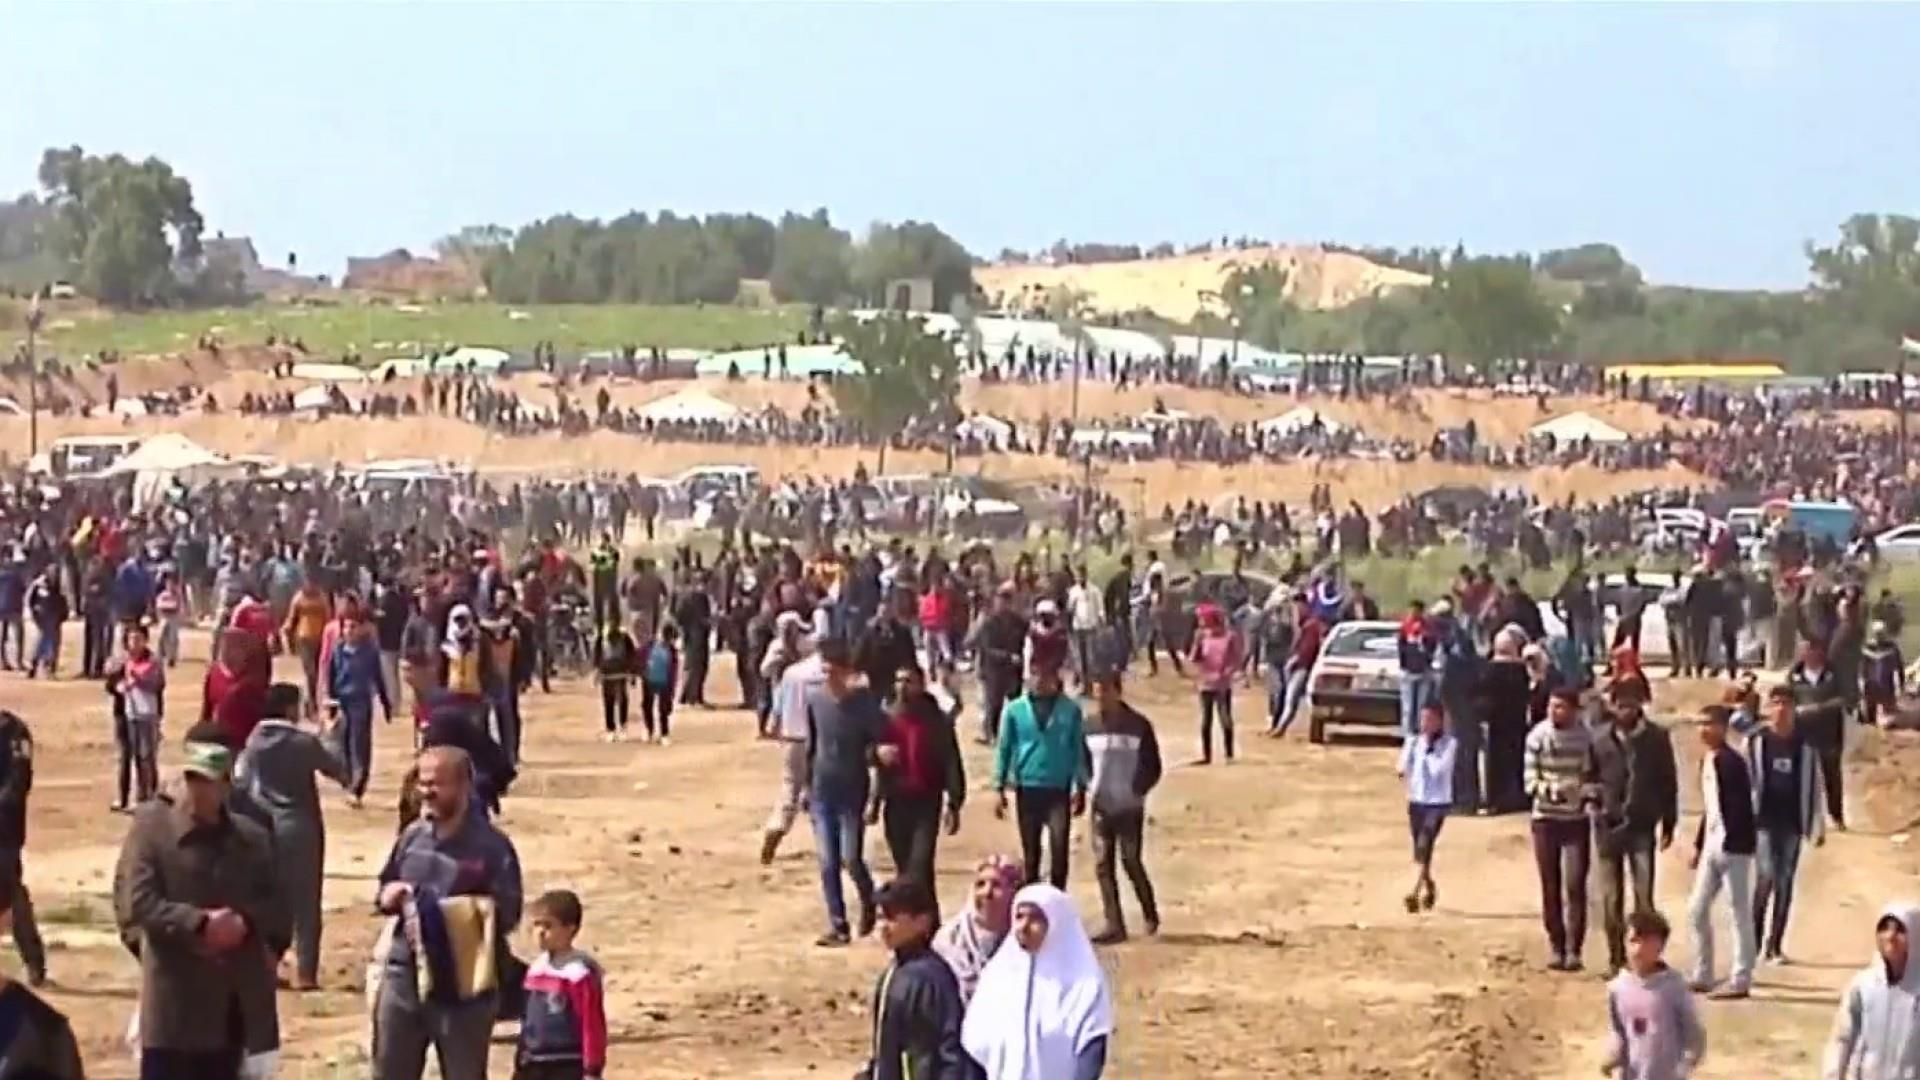 Israeli troops shoot 750 Palestinians at Gaza border